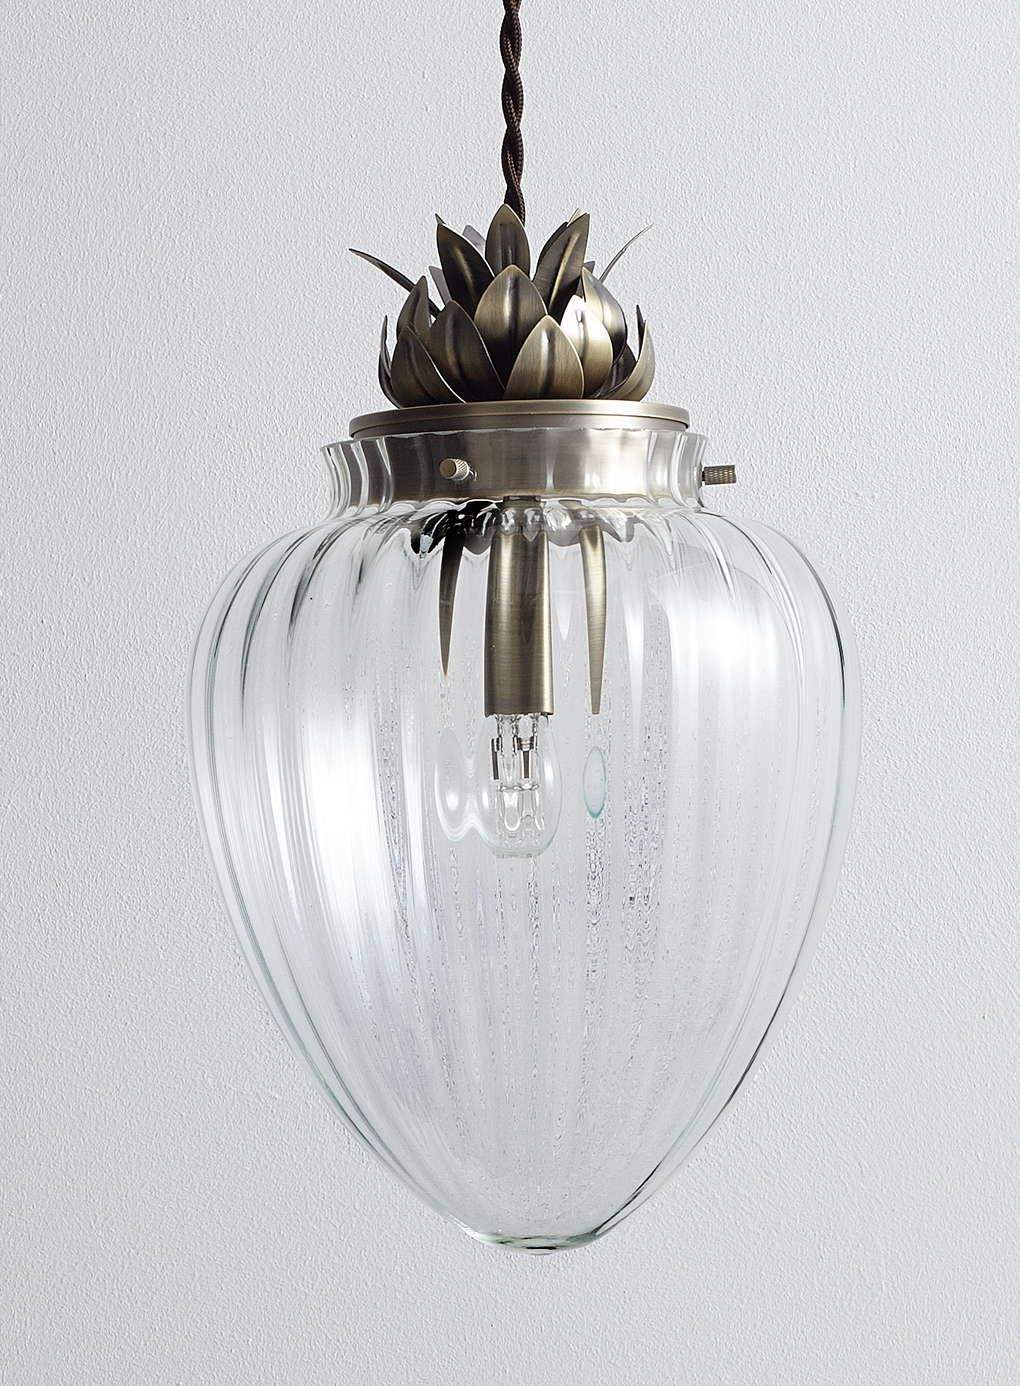 Photo 3 of Jana Ceiling Pendant Light | Lighting | Pinterest ...